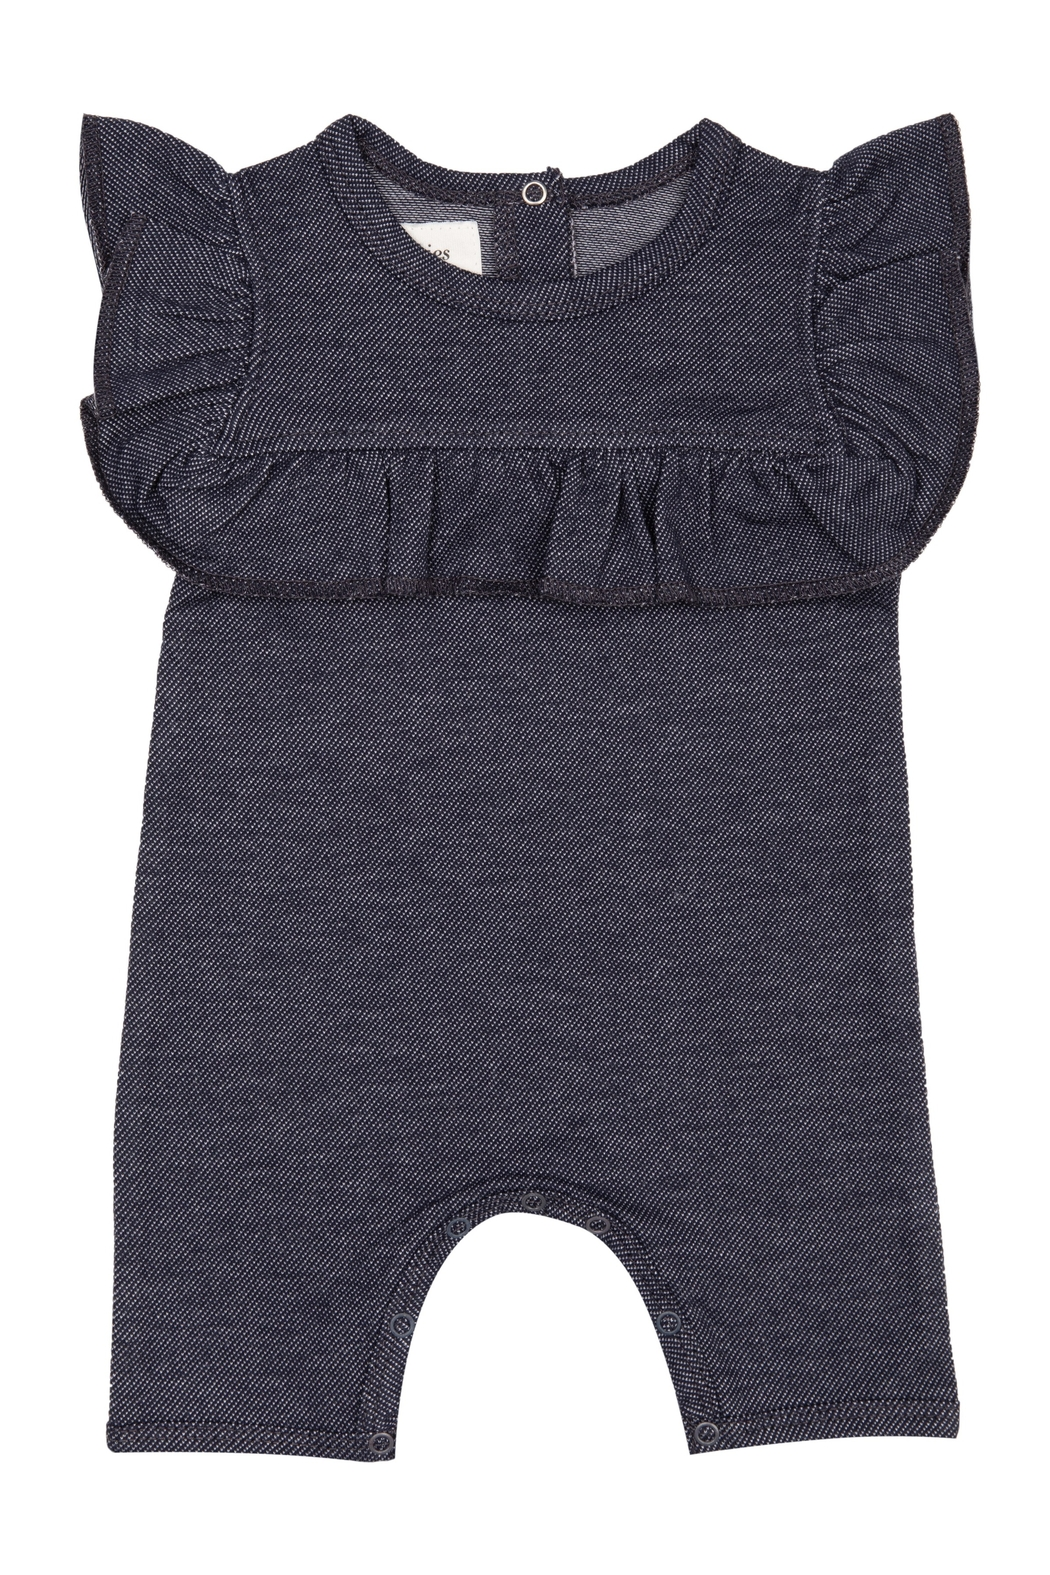 ANTEBIES INFANT DENIM KNIT ROMPER WITH SHOULDER RUFFLES - Front Cropped Image